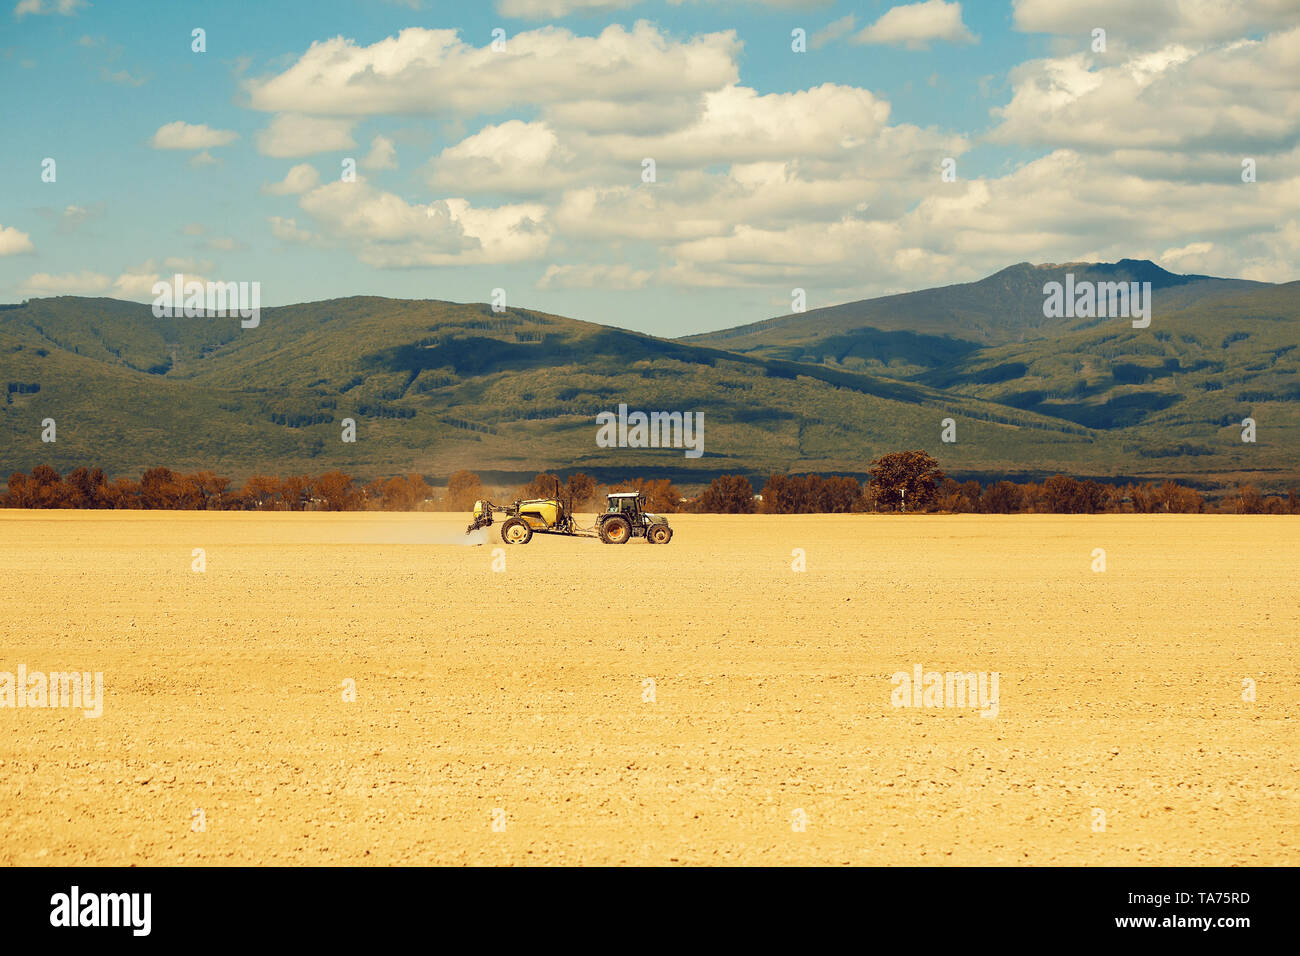 Farm tractor drives in field - Stock Image